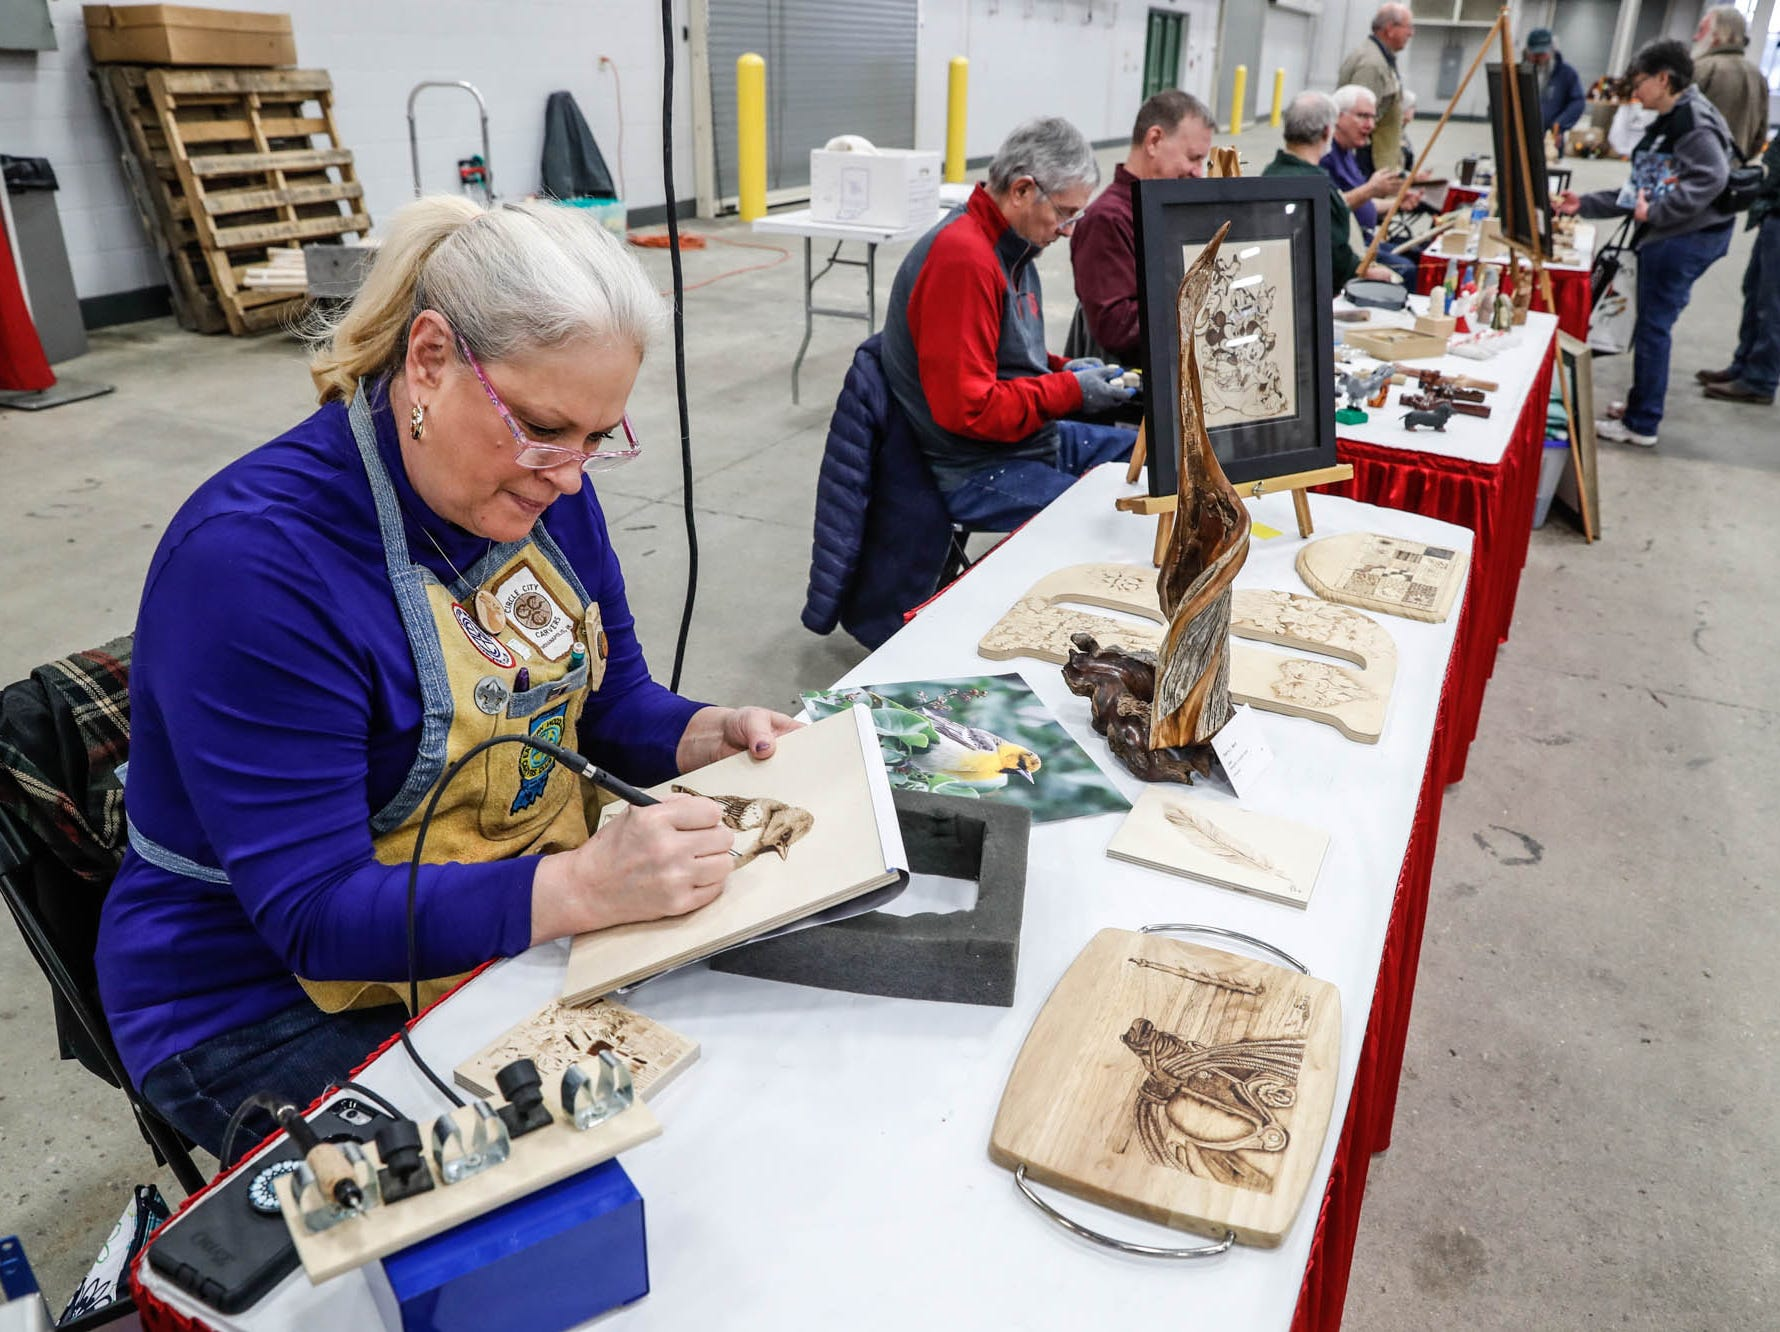 Wood worker Sherry Beck creates a wood burning portrait of a bird during a Wood Working Show at the Indiana State Fairgrounds in Indianapolis on Sunday, Feb. 3, 2019.